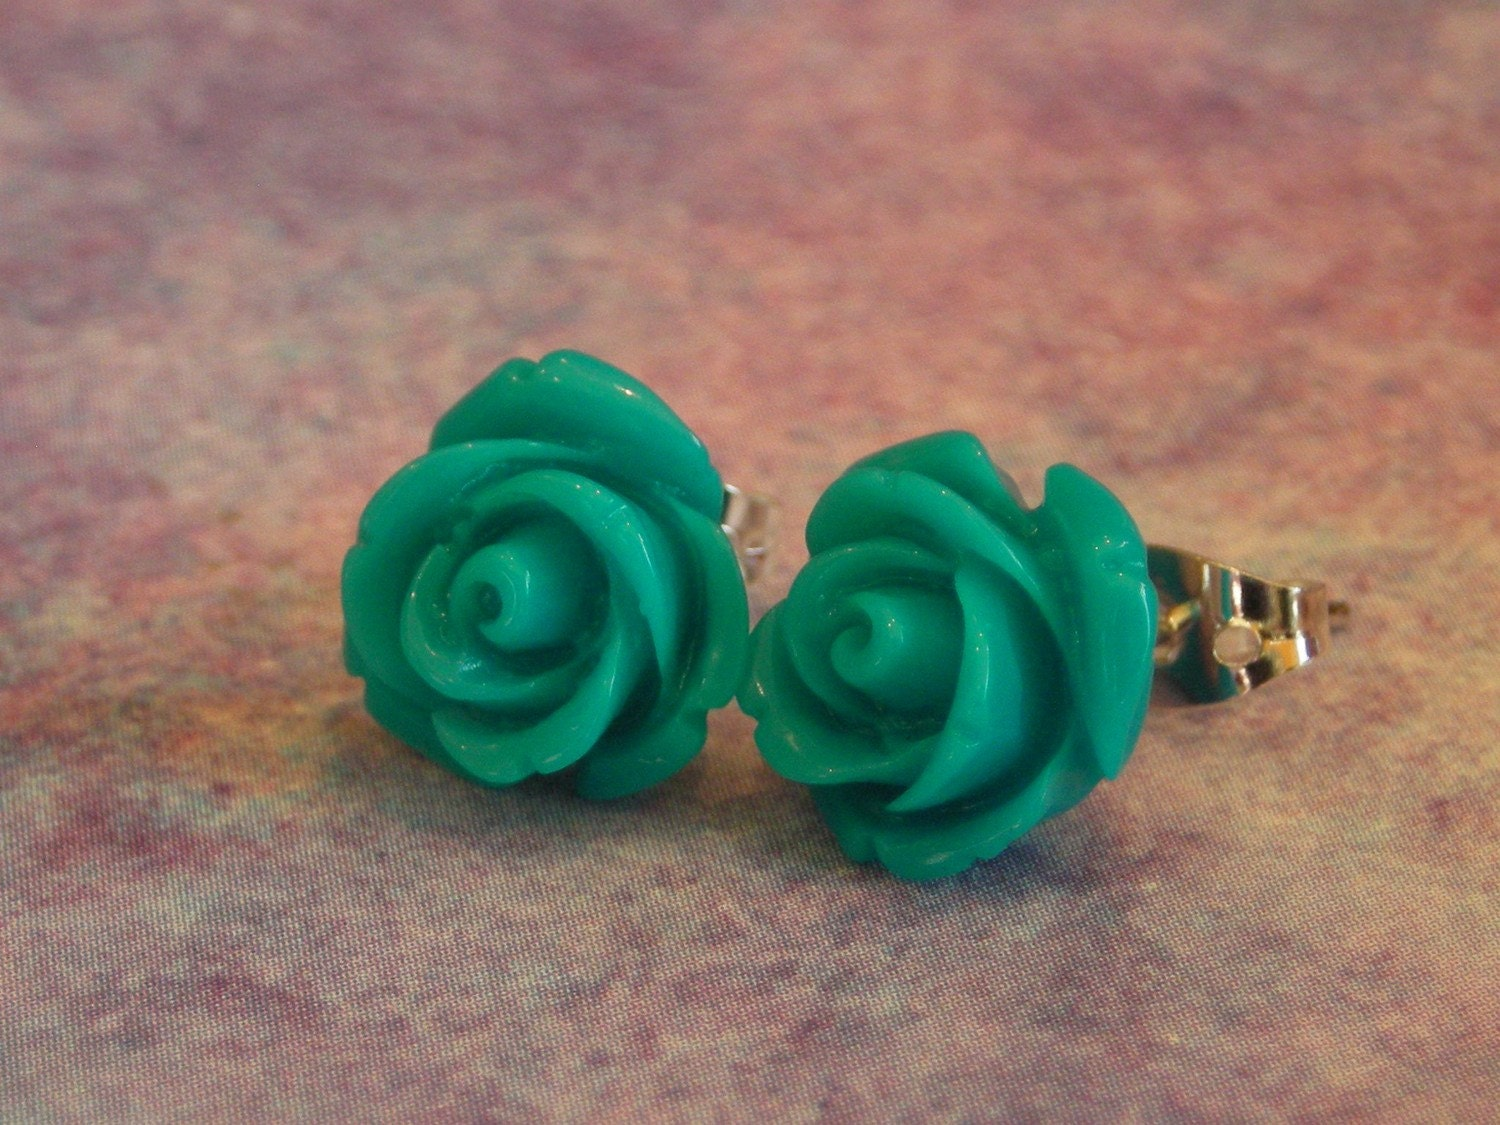 Turquoise rose earrings 10mm